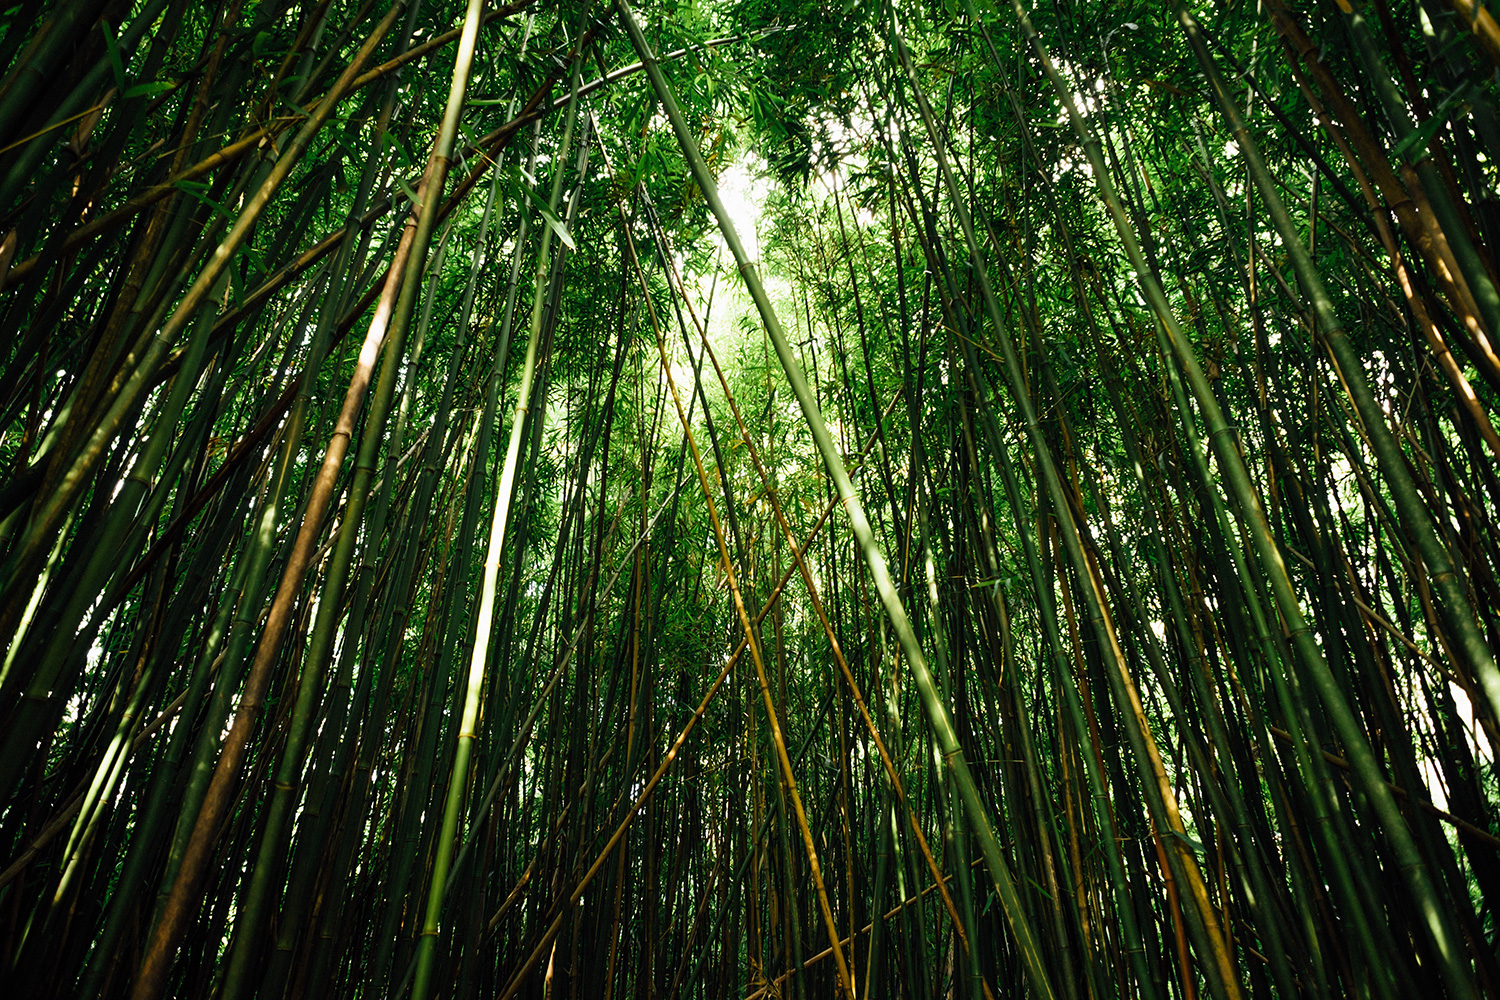 a forest of green bamboo with sunlight